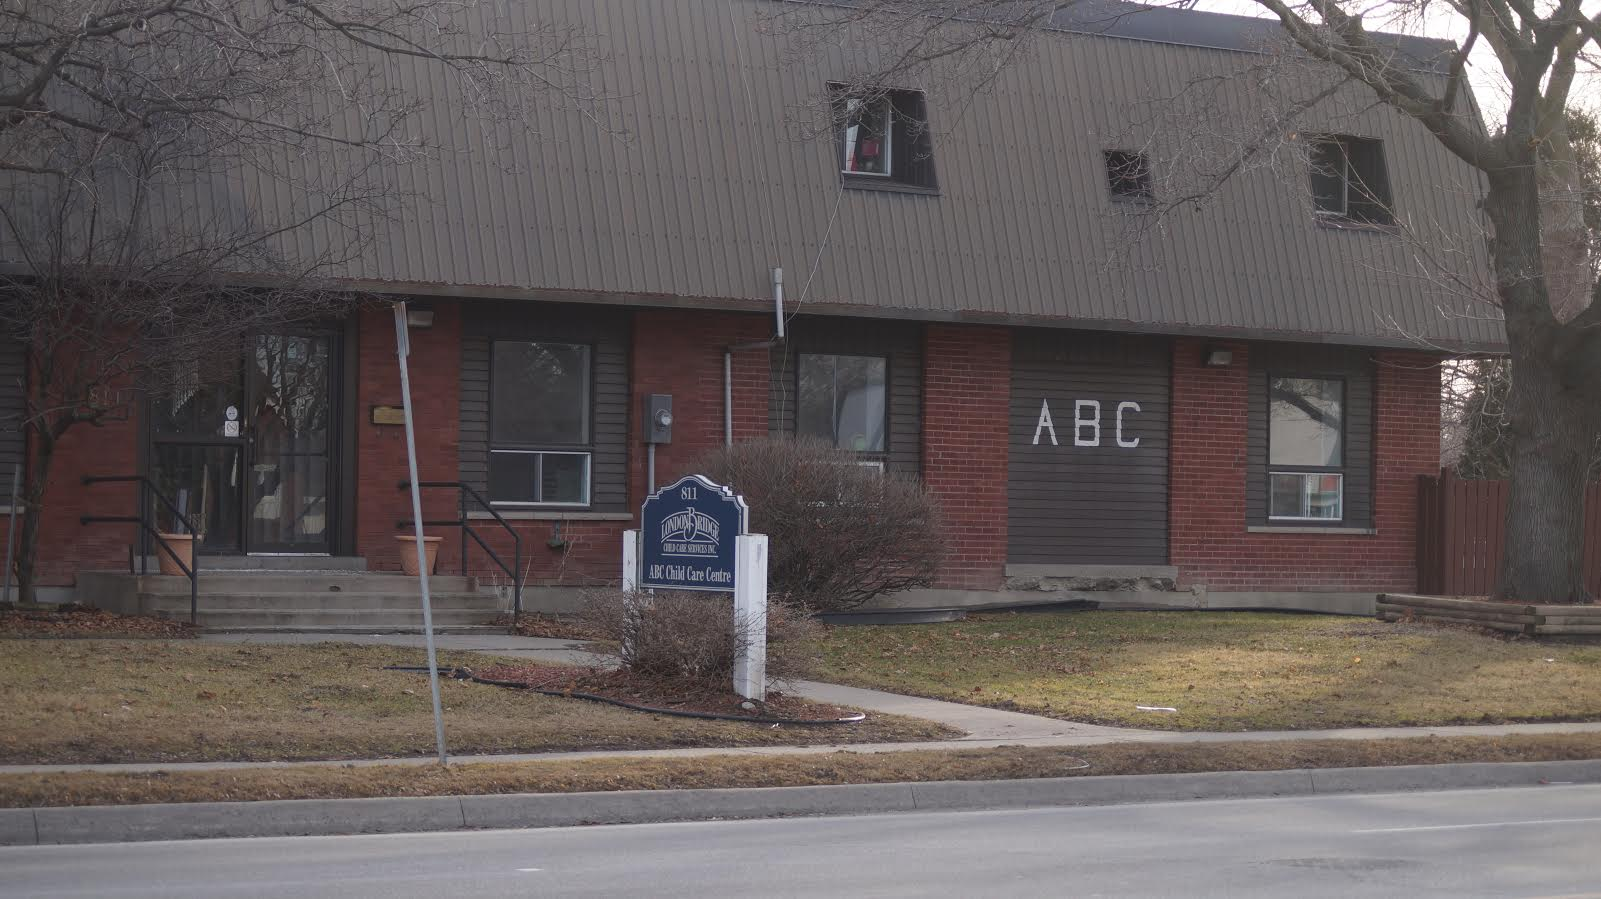 ABC Daycare in Sarnia (Blackburnnews.com Photo By Briana Carnegie)